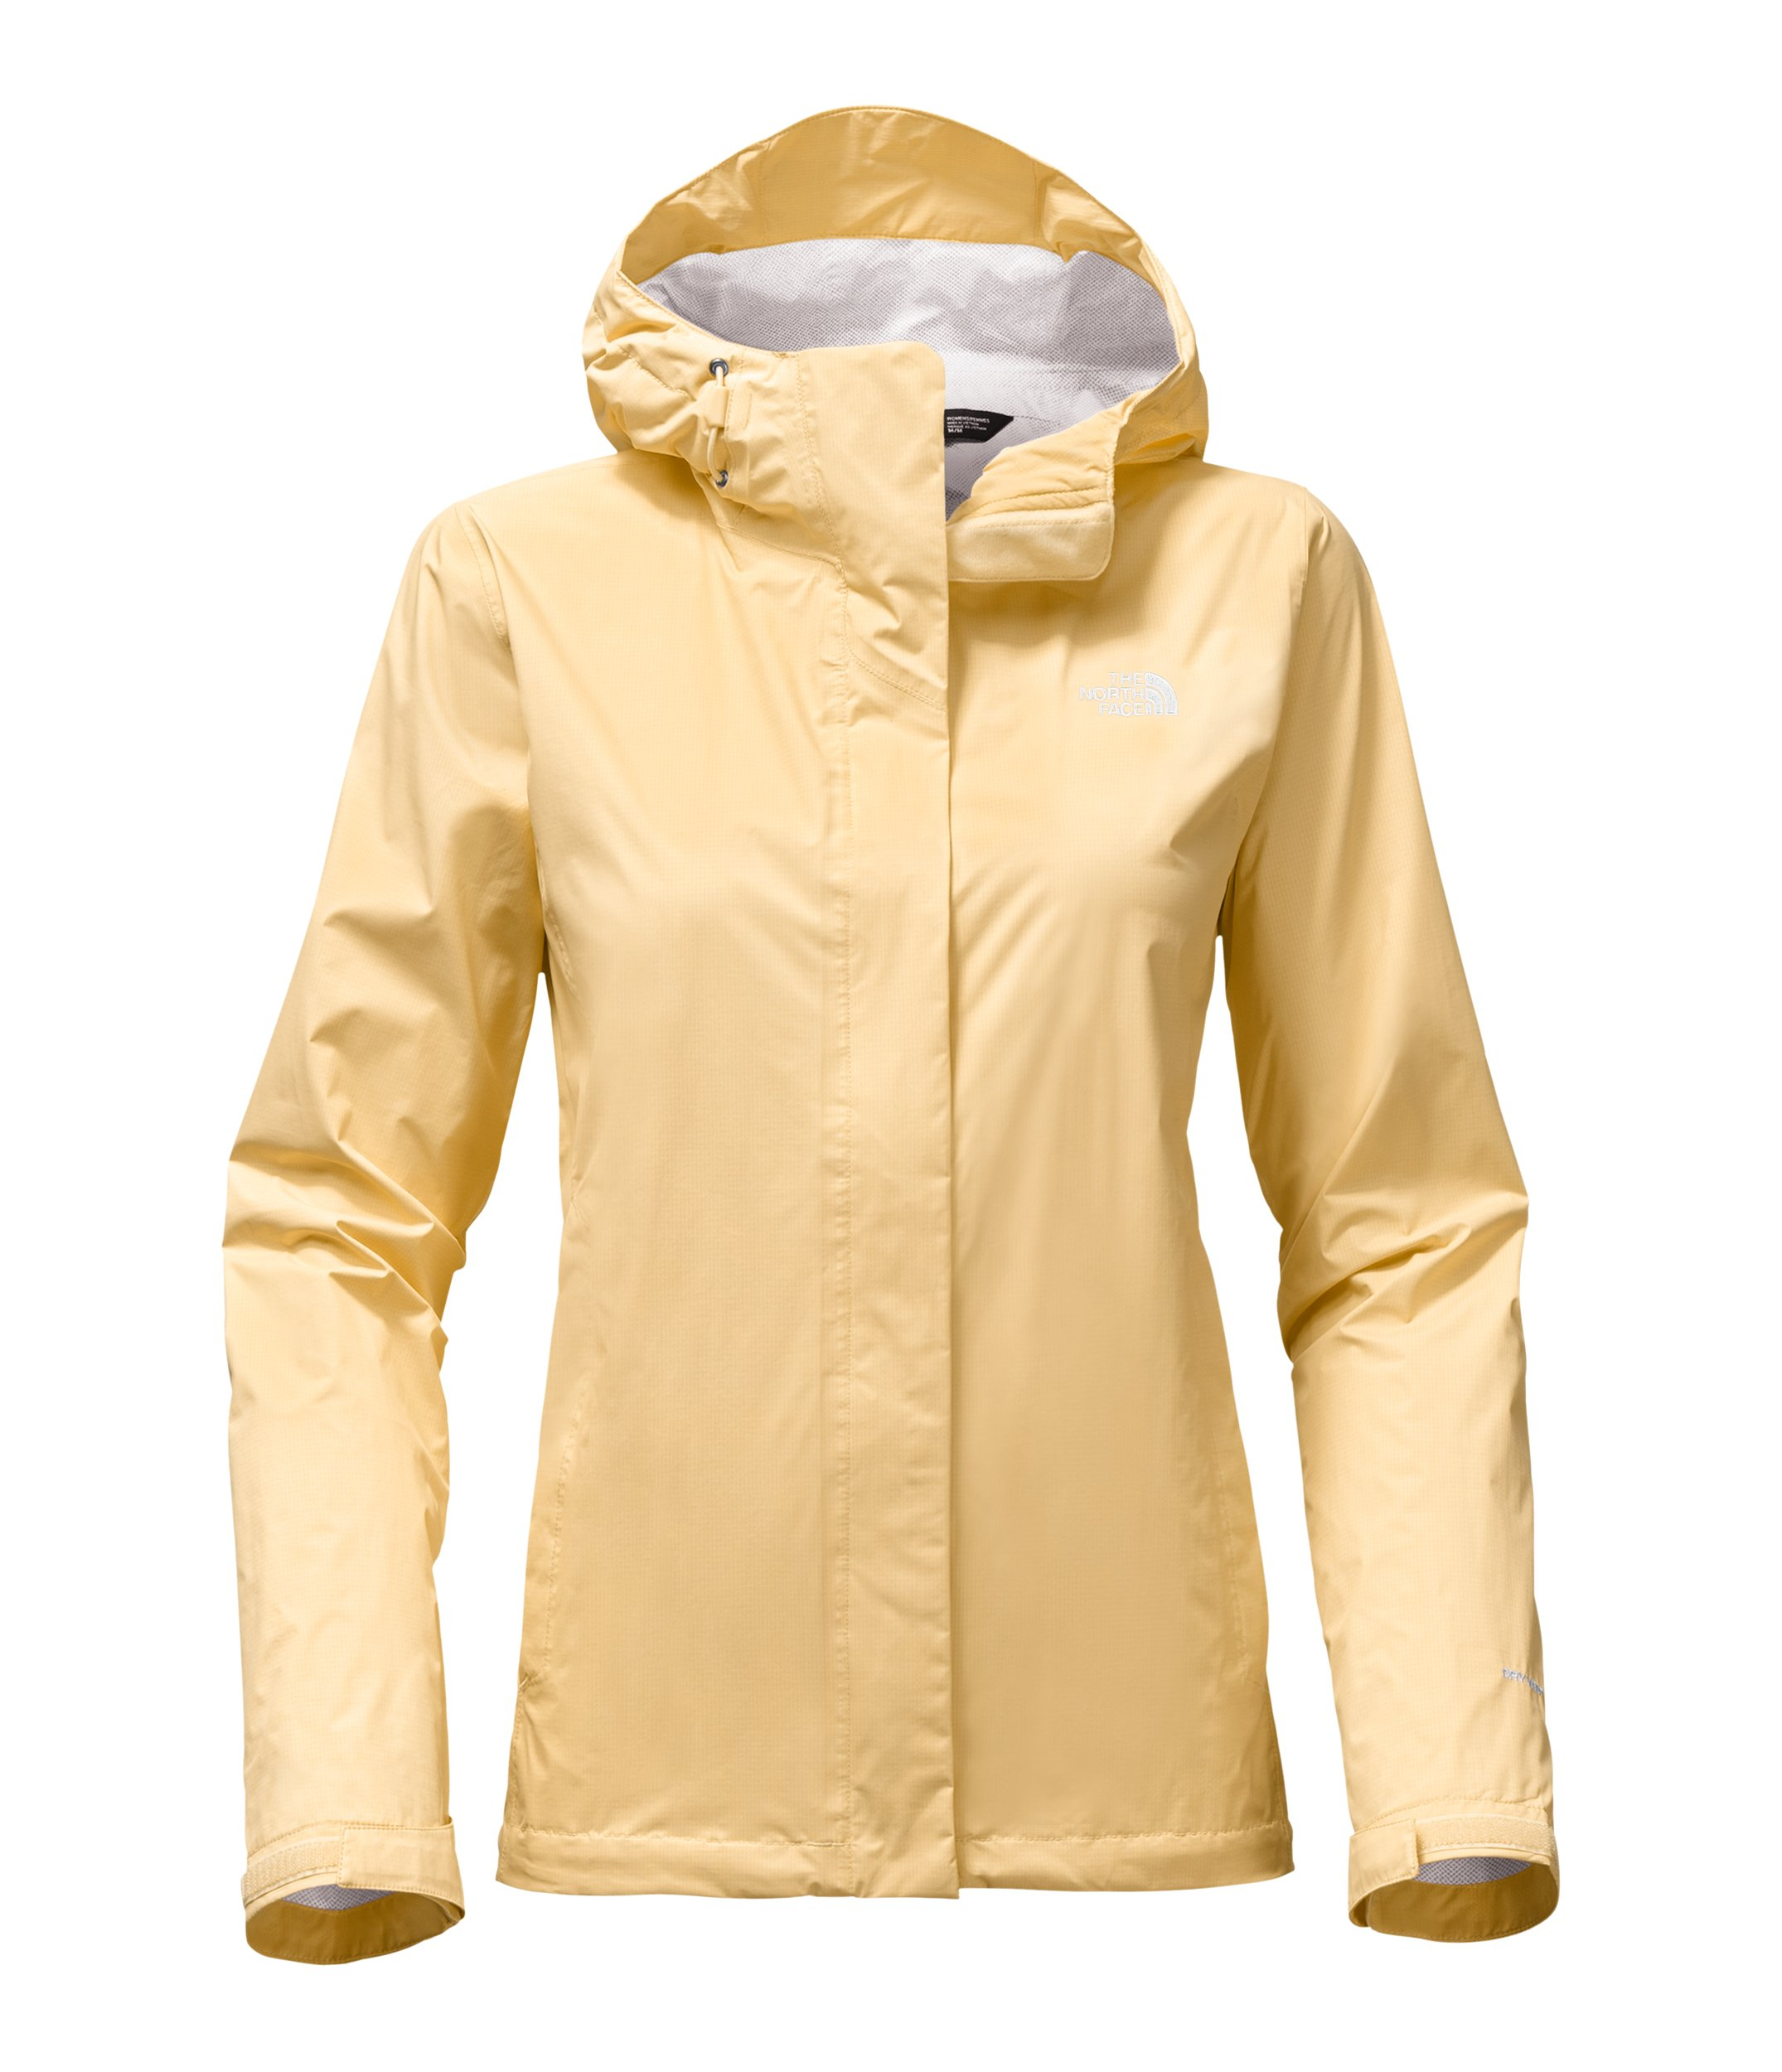 The North Face Women's Venture 2 Jacket Golden Haze L